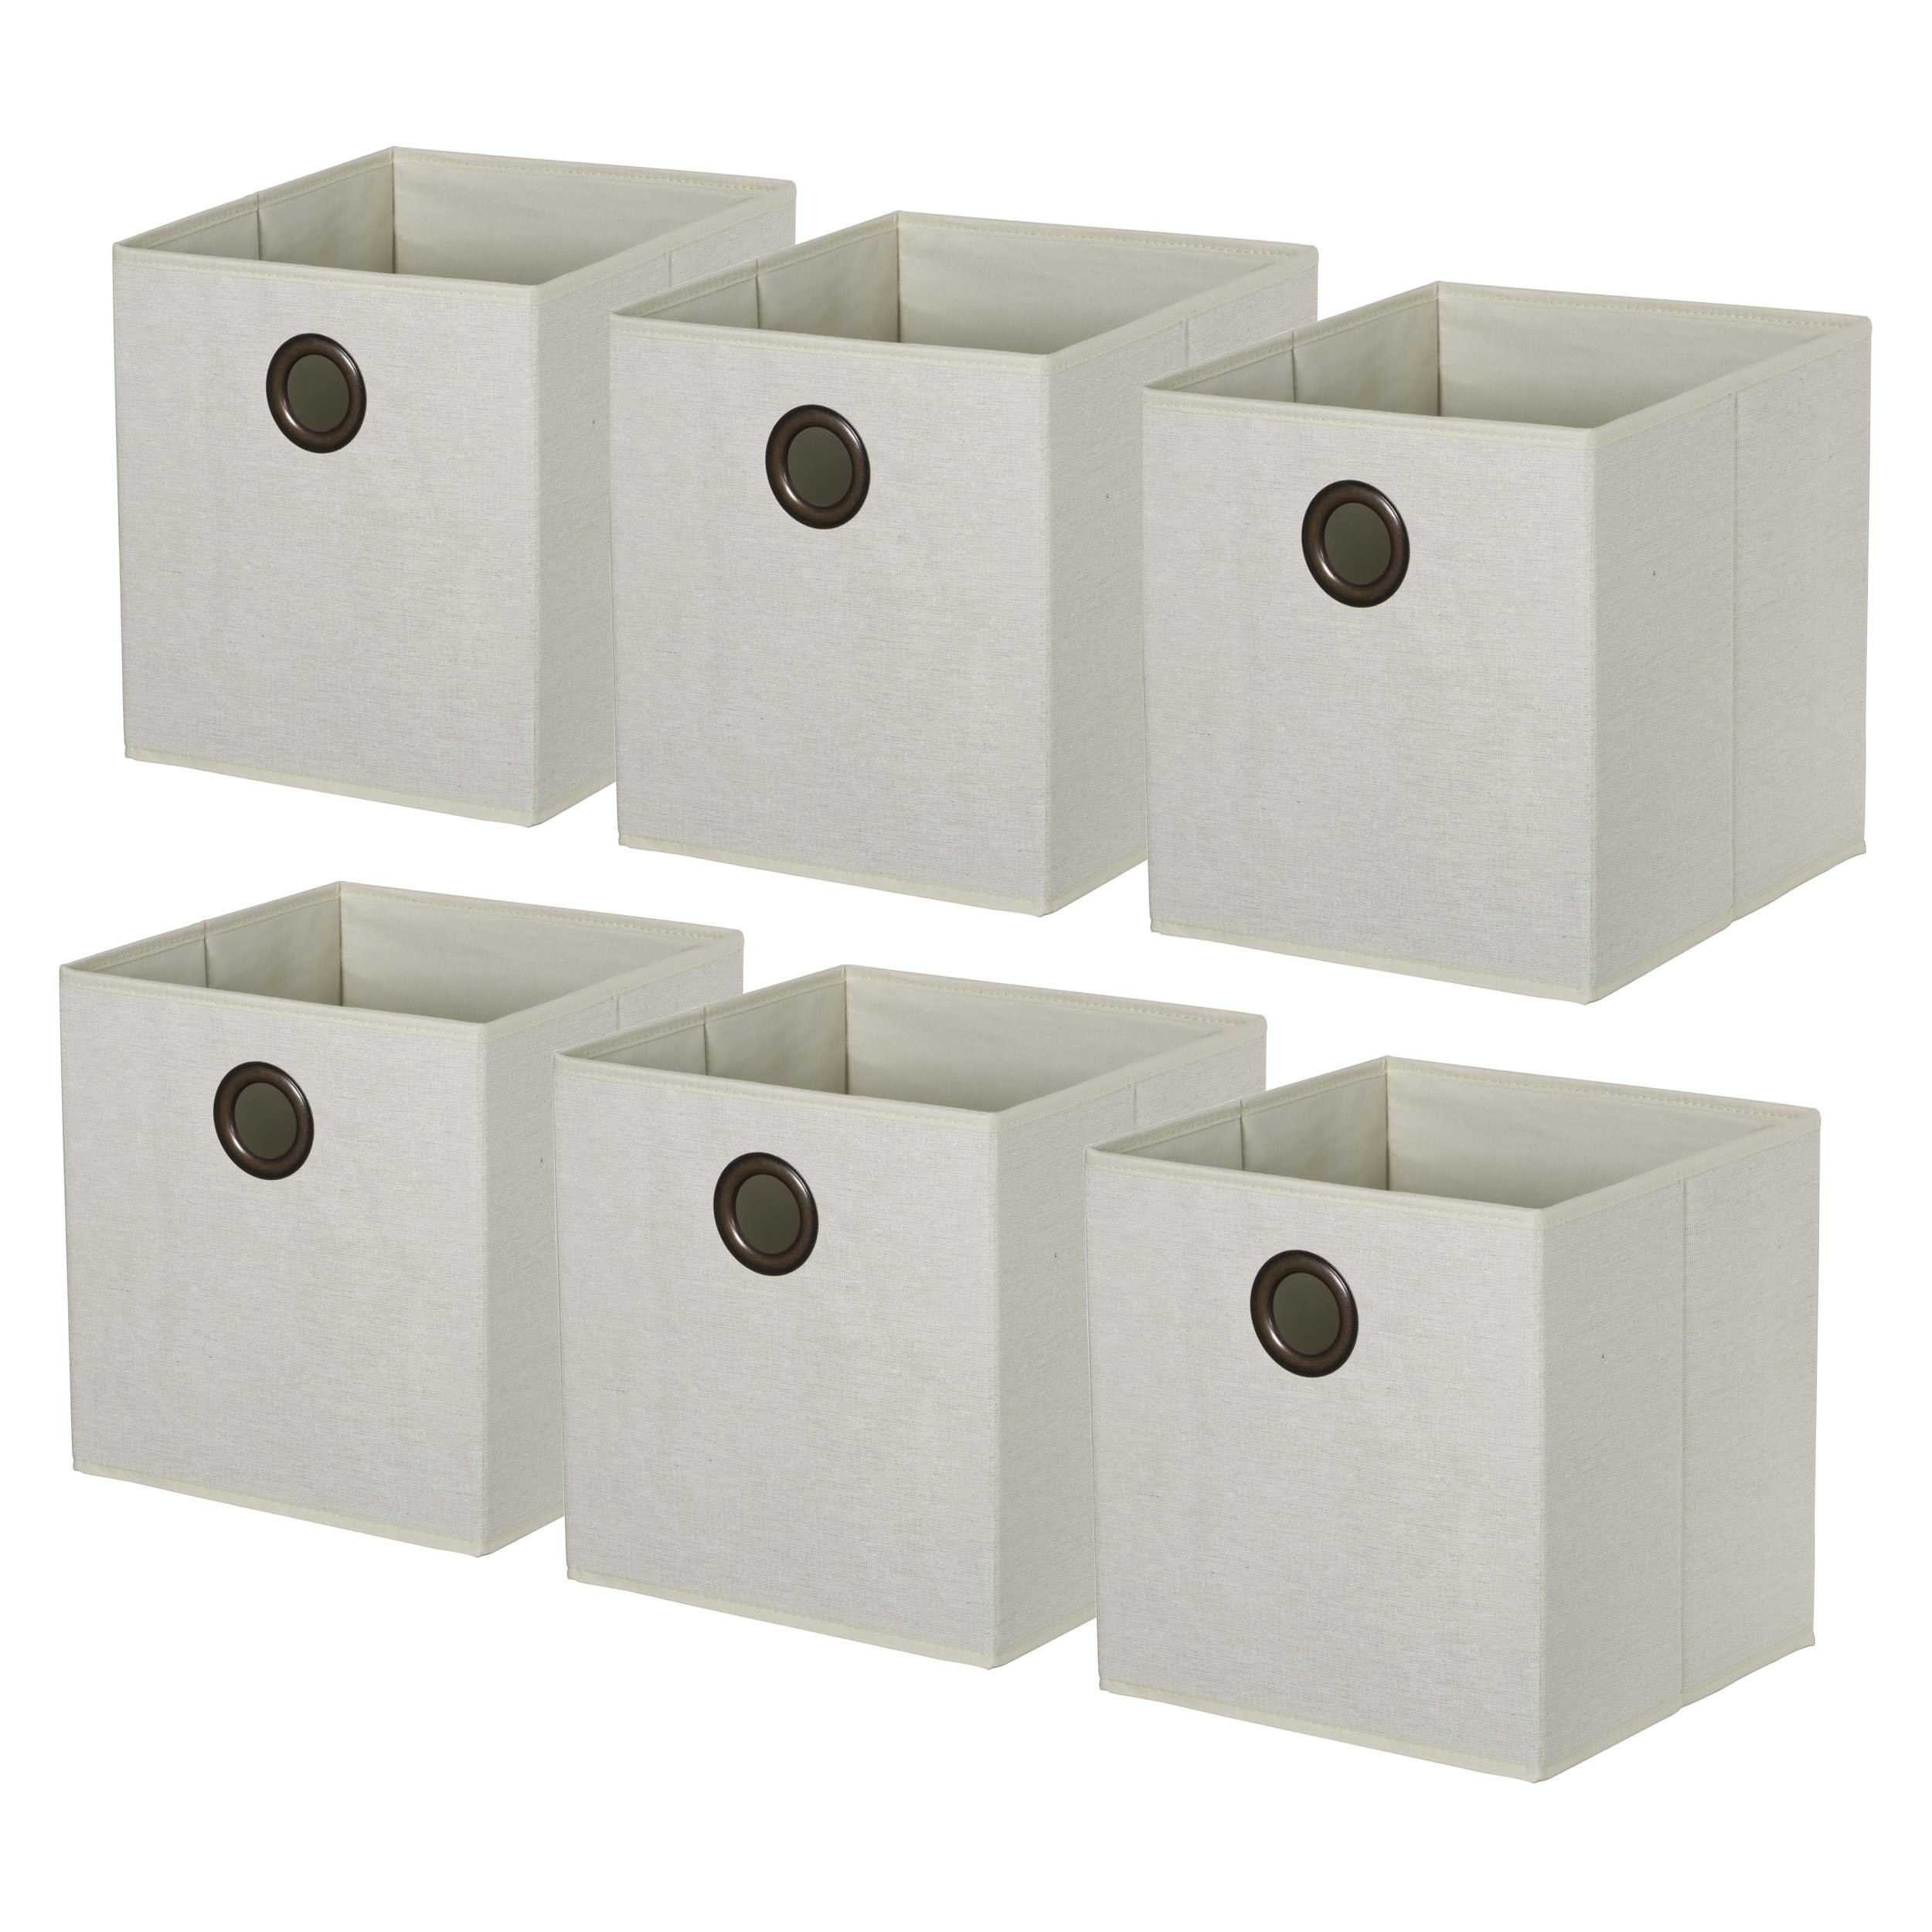 HomeCrate Foldable Burlap Canvas, Cloth Storage Cube Basket Bin, Pack of 6 - Natural by HomeCrate (Image #2)